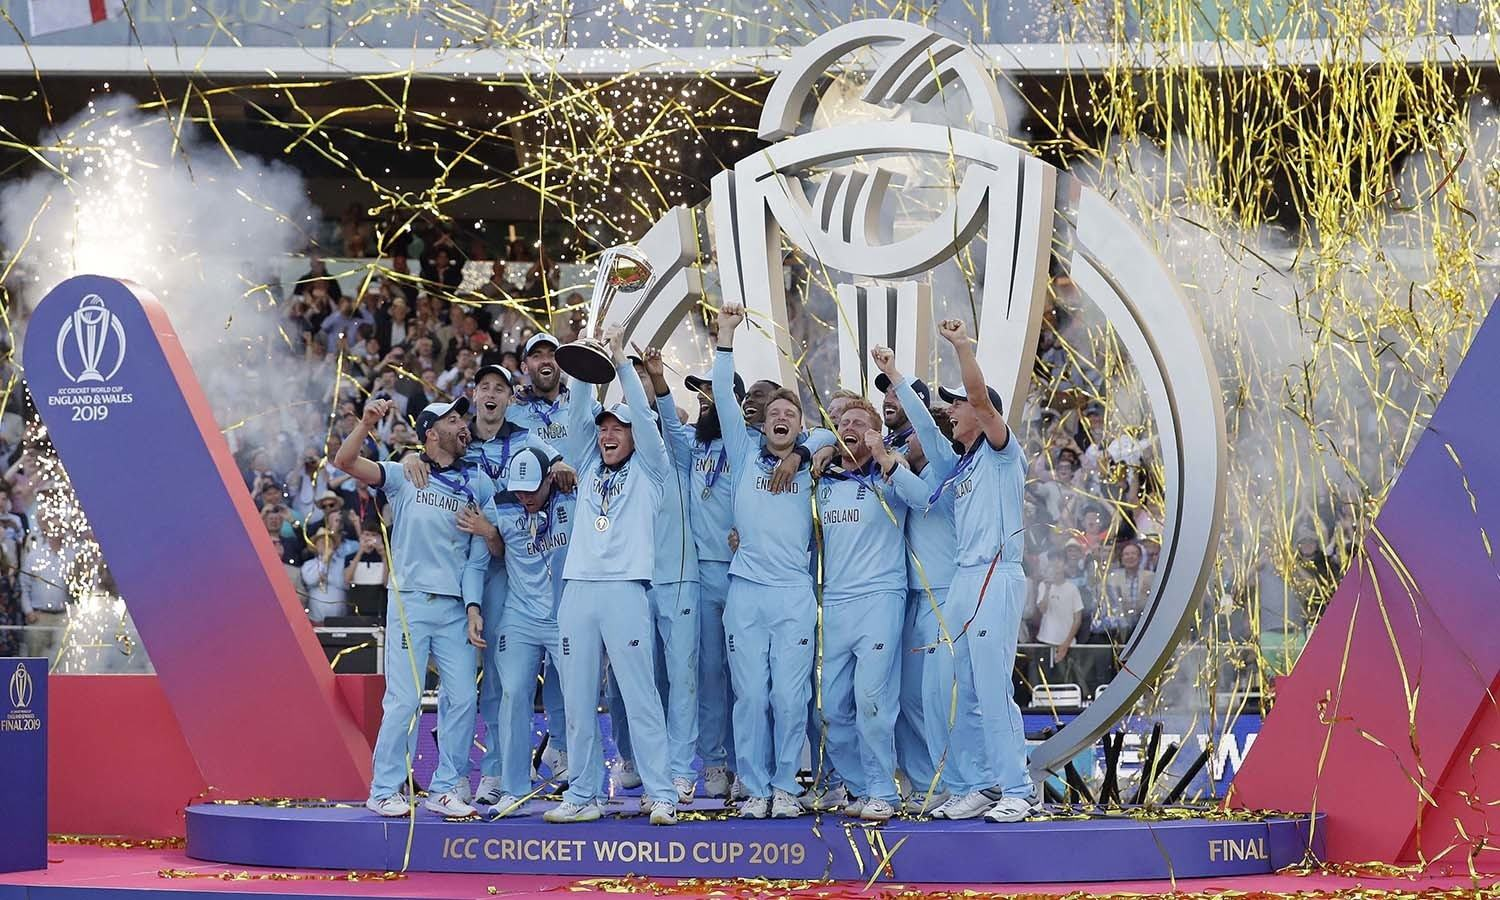 In pictures: England lift the World Cup after nail-biting fight against New Zealand